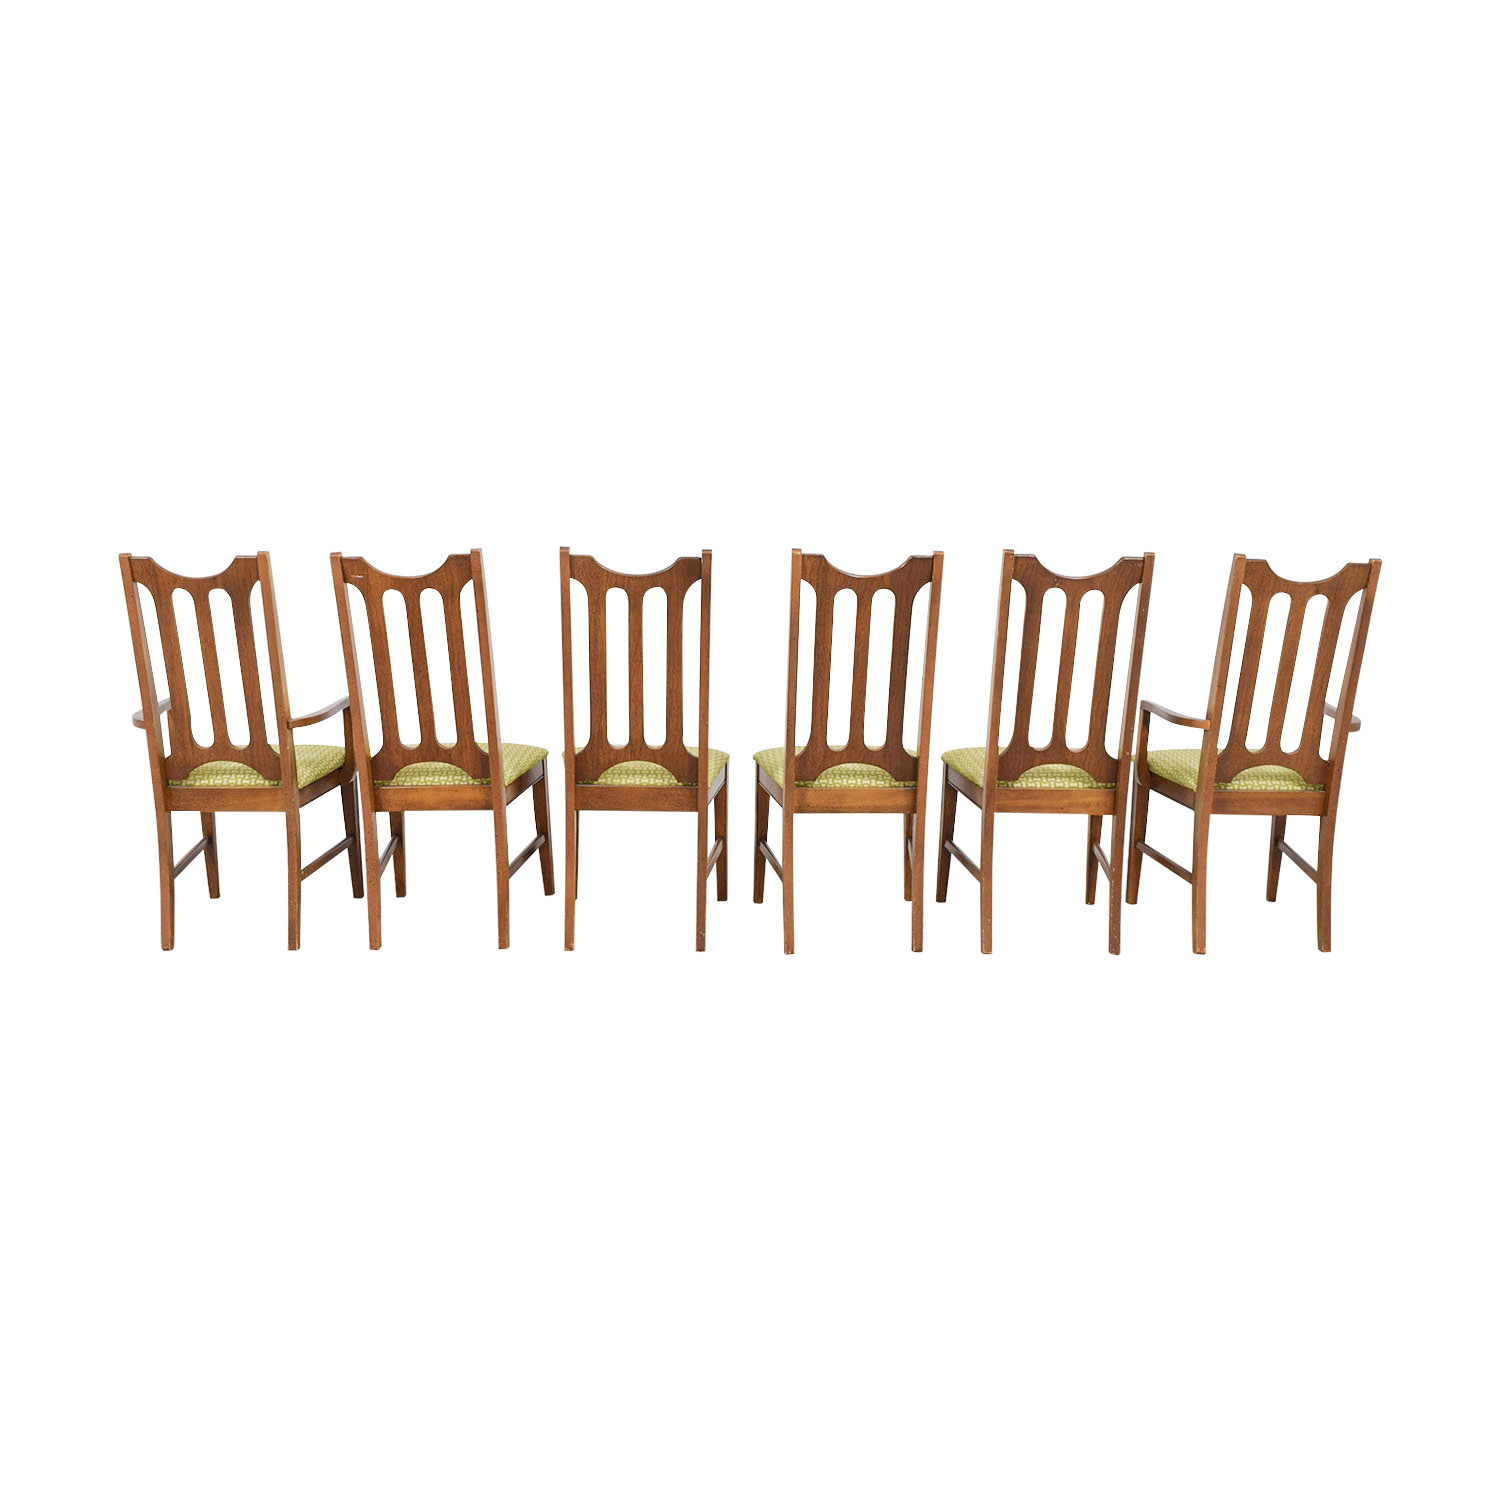 Bassett Furniture Bassett Furniture Mid-Century Green Upholstered Dining Chairs discount